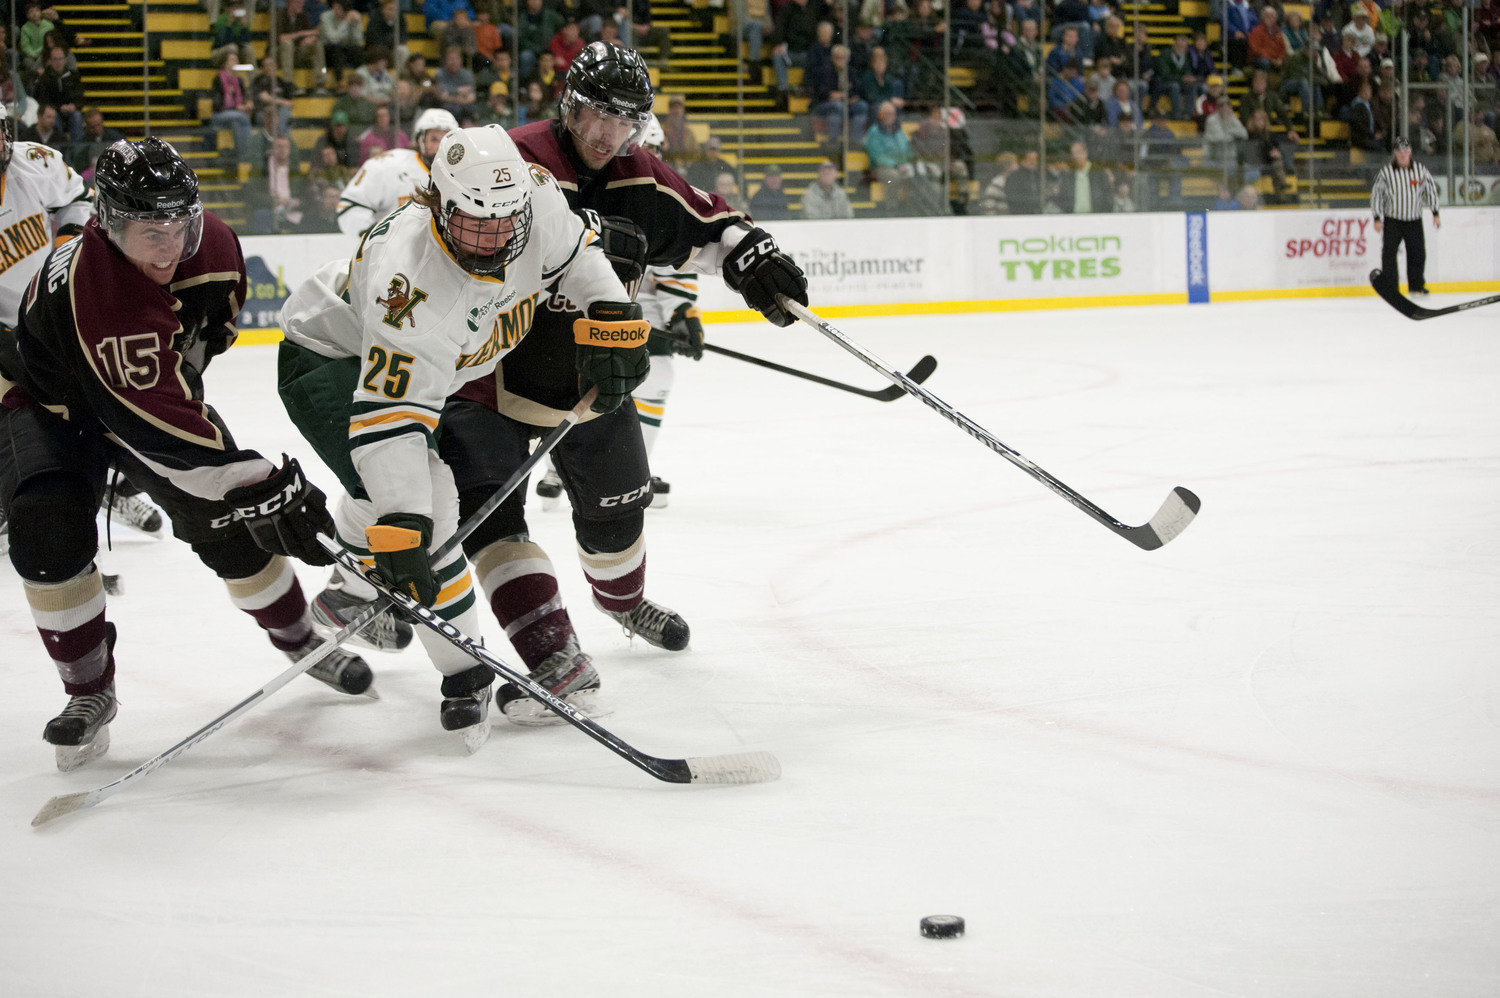 Sophomore Nick Luukko reaches to get the puck past Concordia defenders in an exhibition game Oct. 6, 2012.